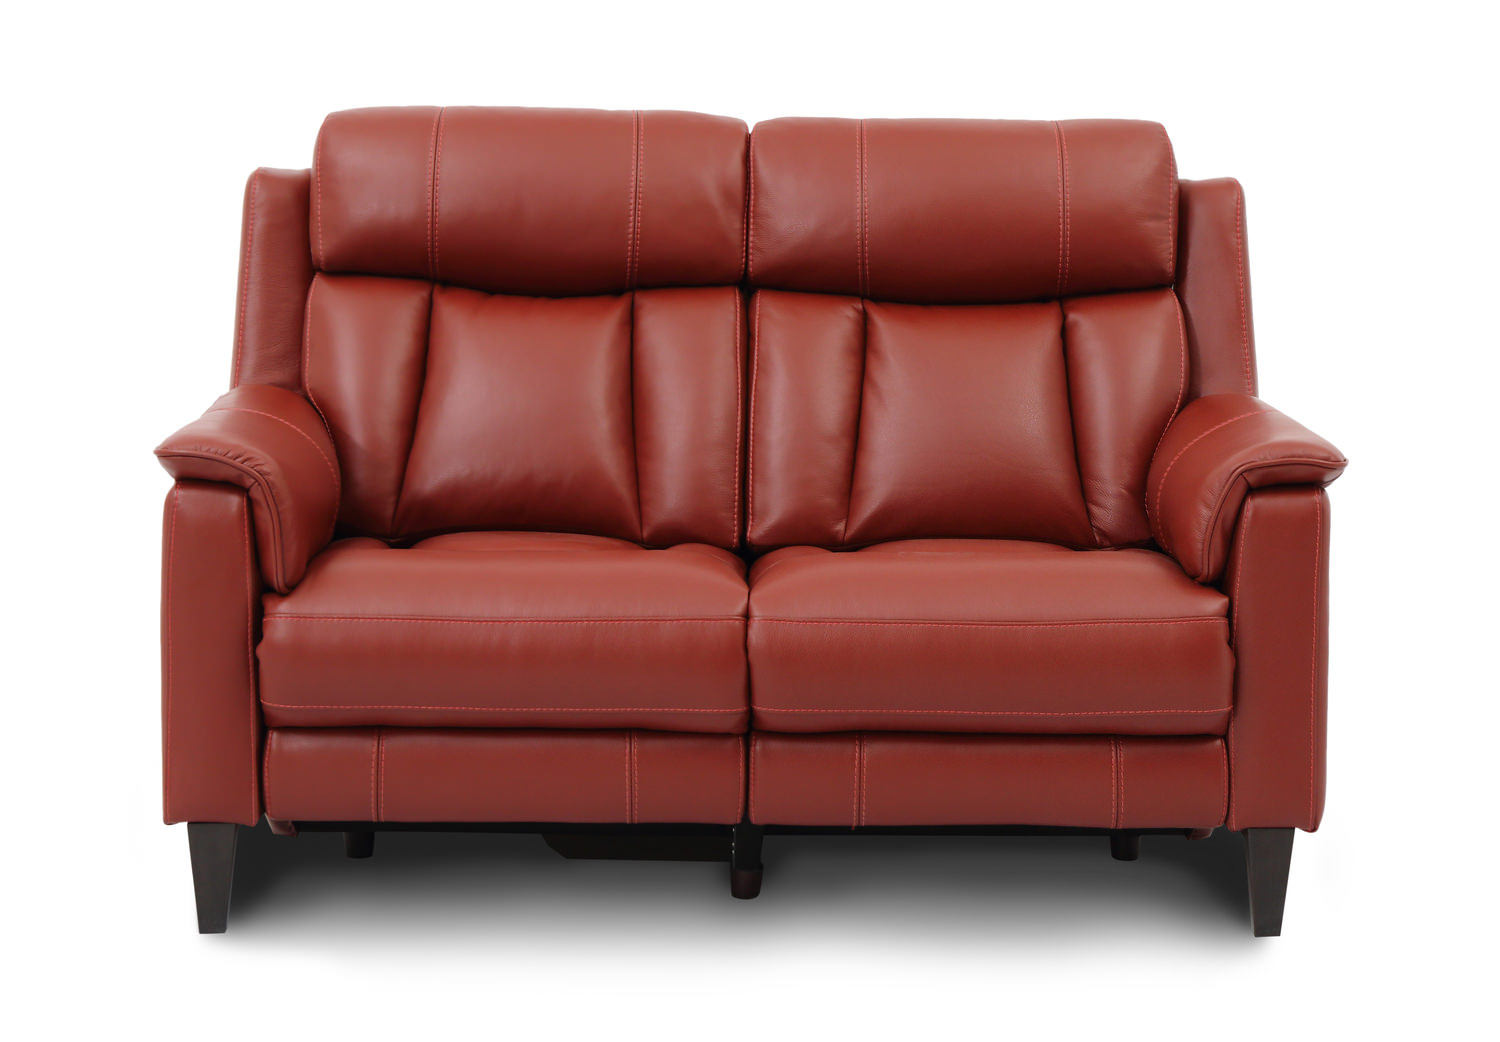 Admirable Kara Leather Power Reclining Loveseat Inzonedesignstudio Interior Chair Design Inzonedesignstudiocom